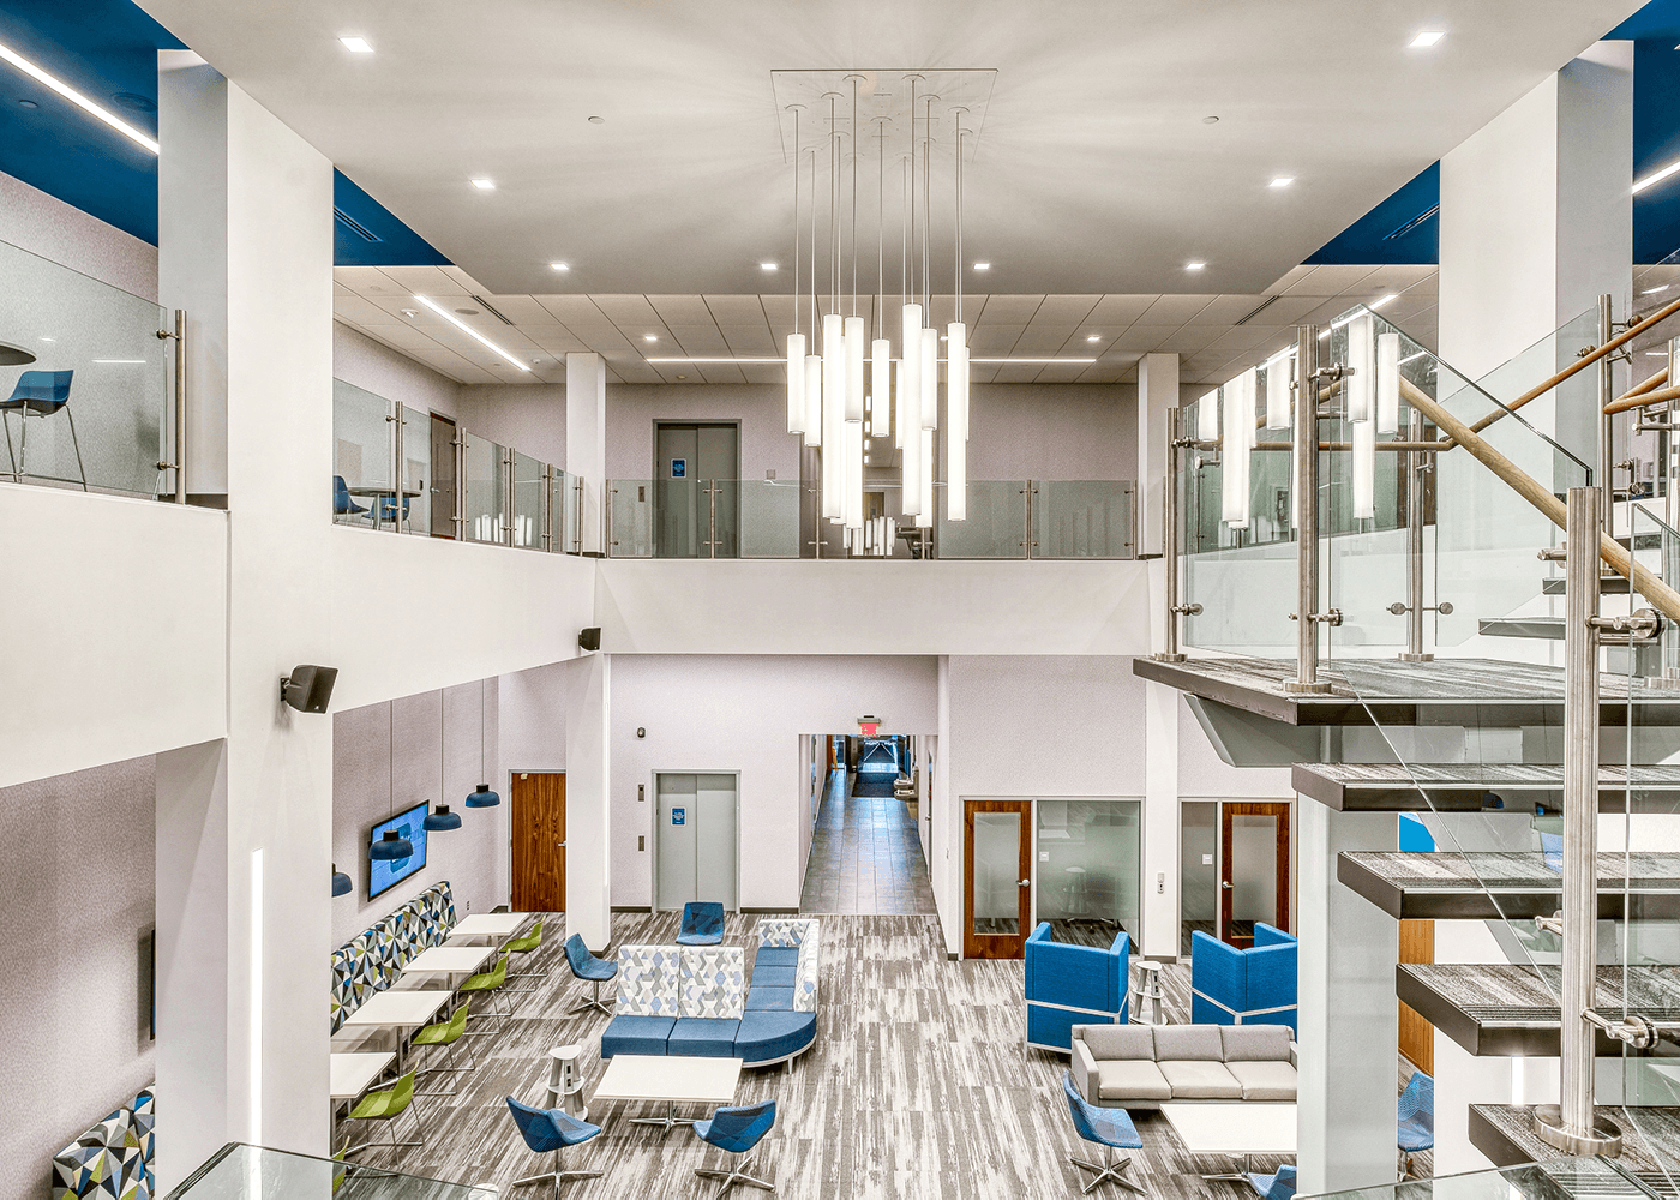 two-story Dollar Bank space with bright white walls and blue furniture